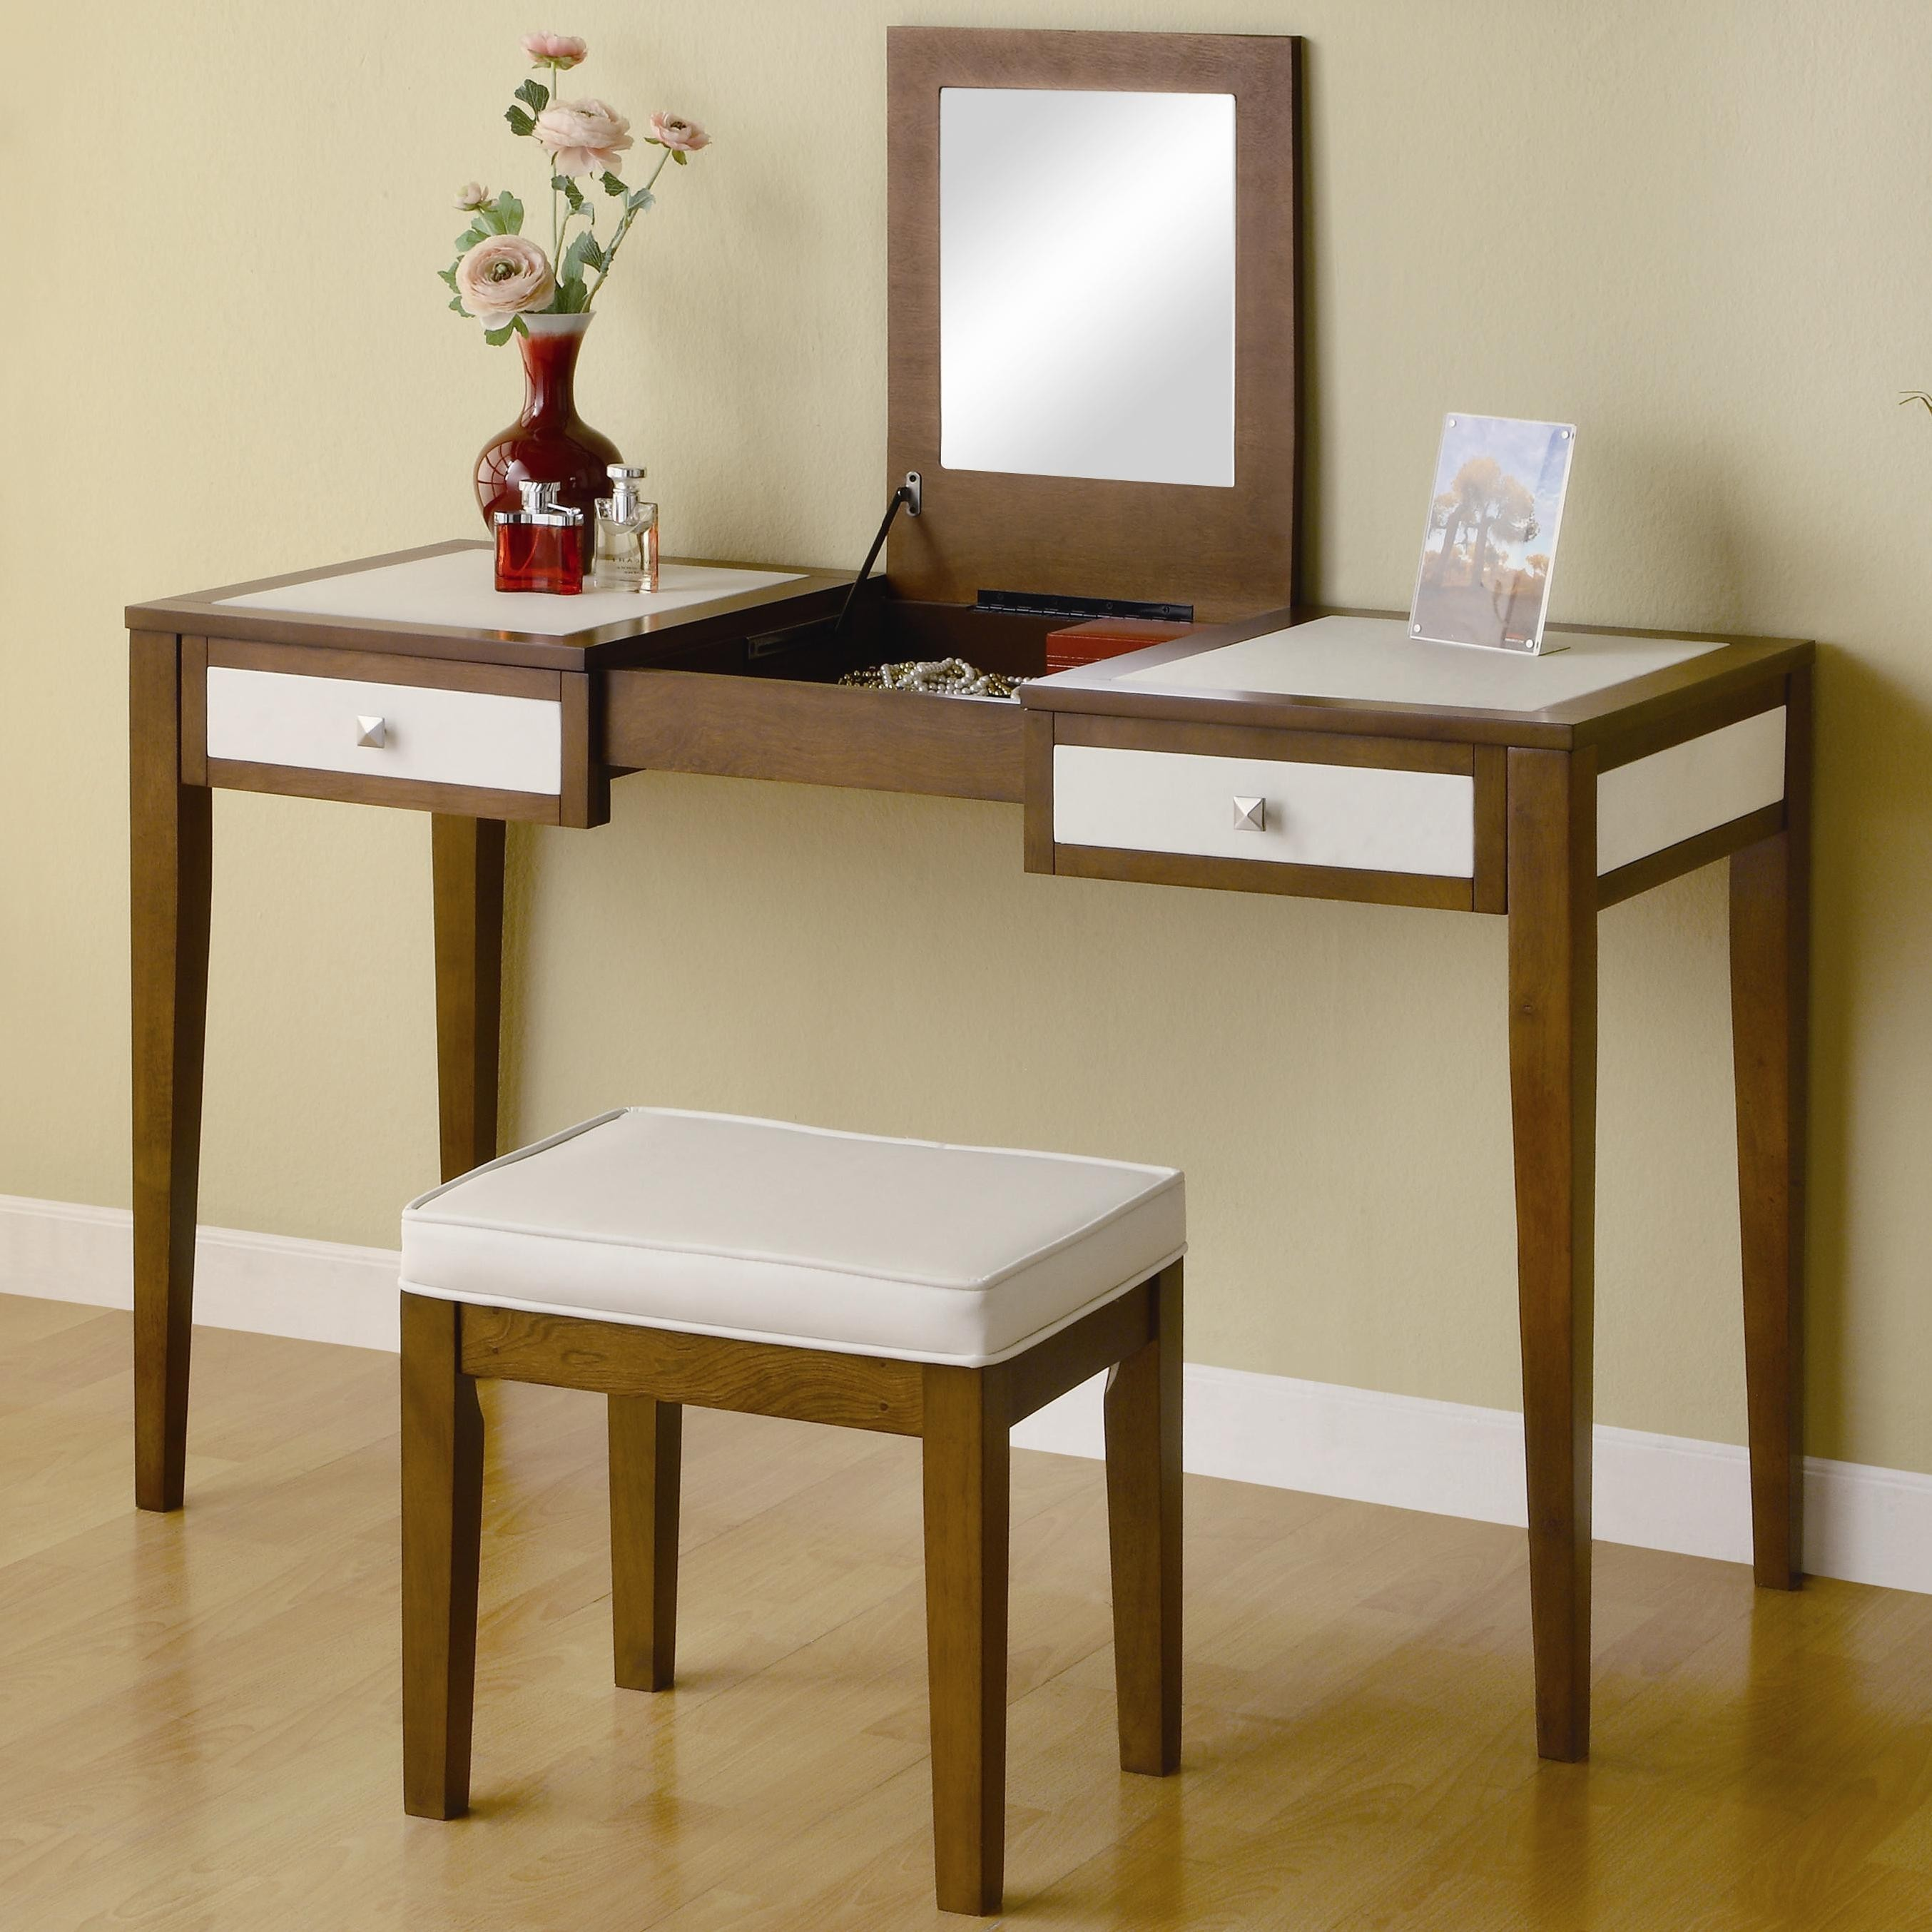 Cozy mirrored vanity for home furniture and vanity mirror with lights